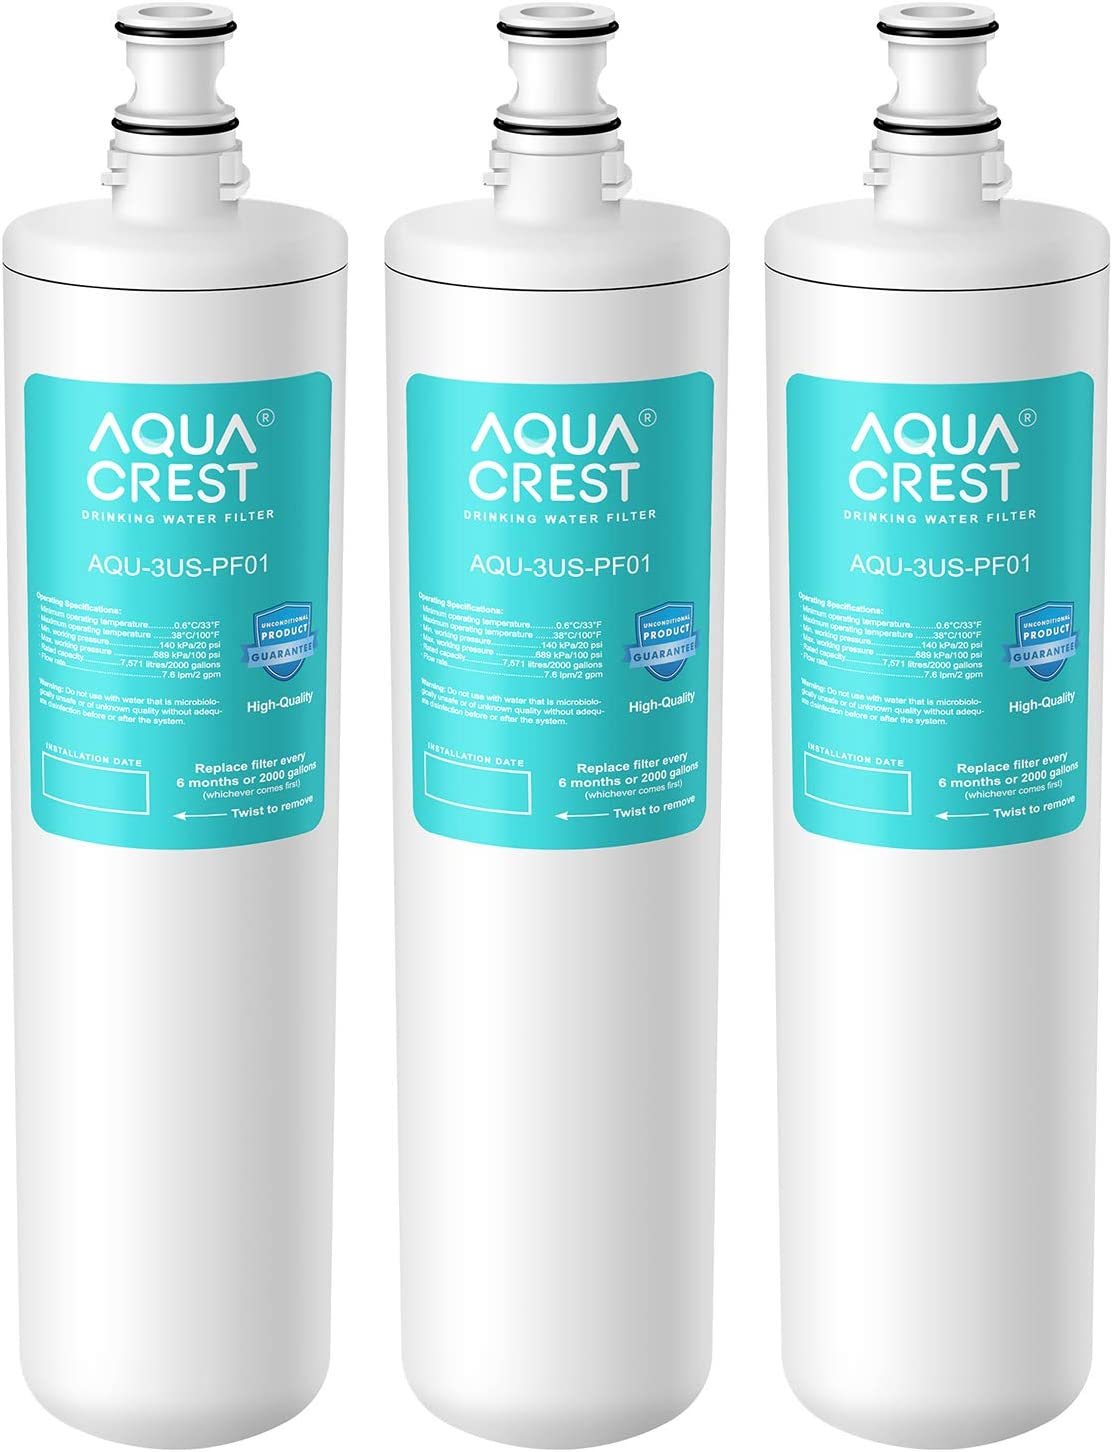 AQUA CREST 3US-PF01 Under Sink Water Filter, Replacement for Filtrete Advanced 3US-PF01, 3US-MAX-F01H, 3US-PF01H, Delta RP78702, Manitowoc K-00337, K-00338 Water Filter, Pack of 3